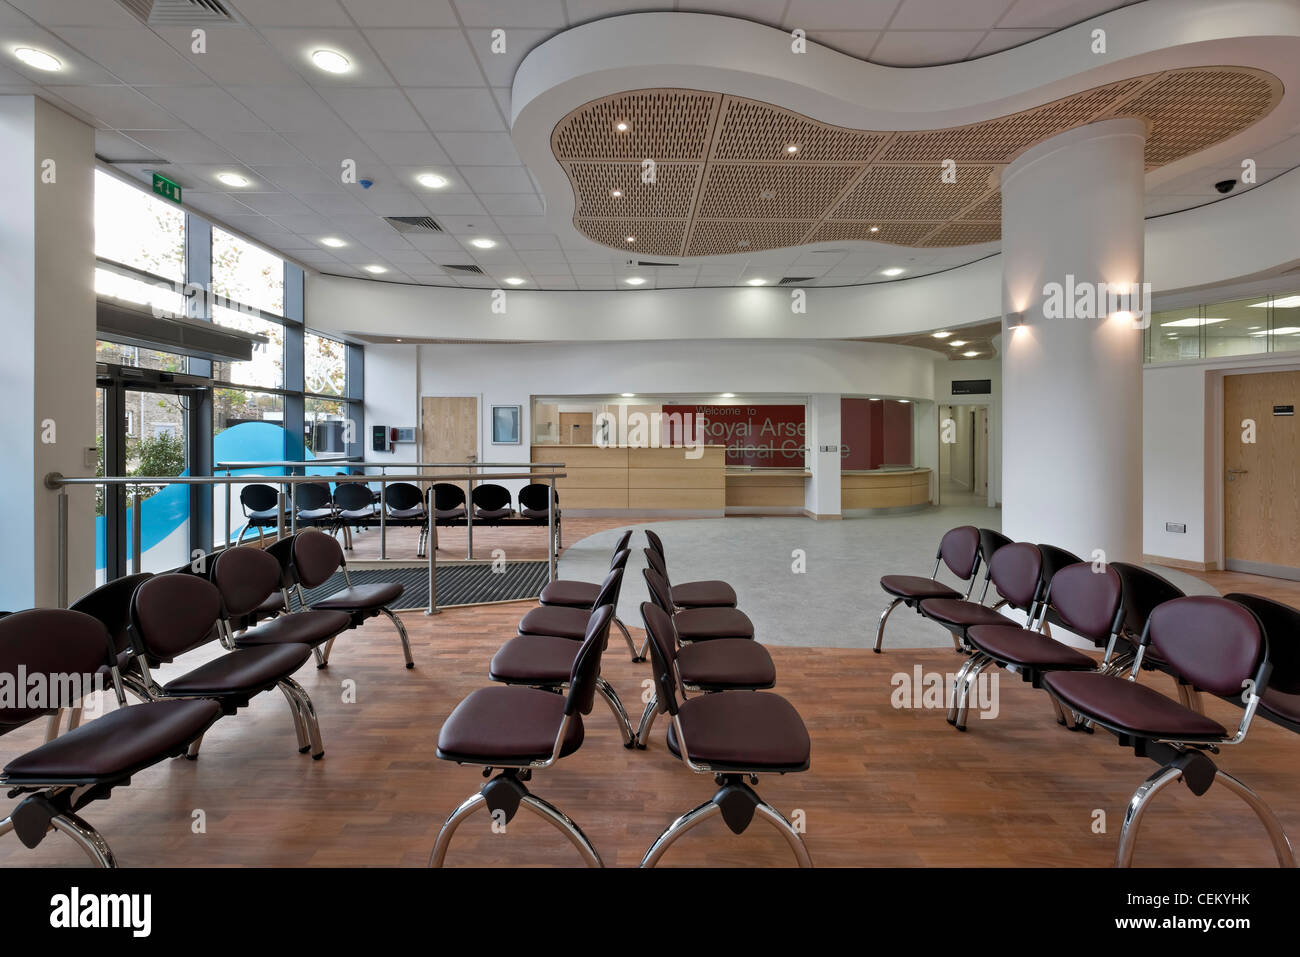 Royal Arsenal Medical Centre in Woolwich - Stock Image